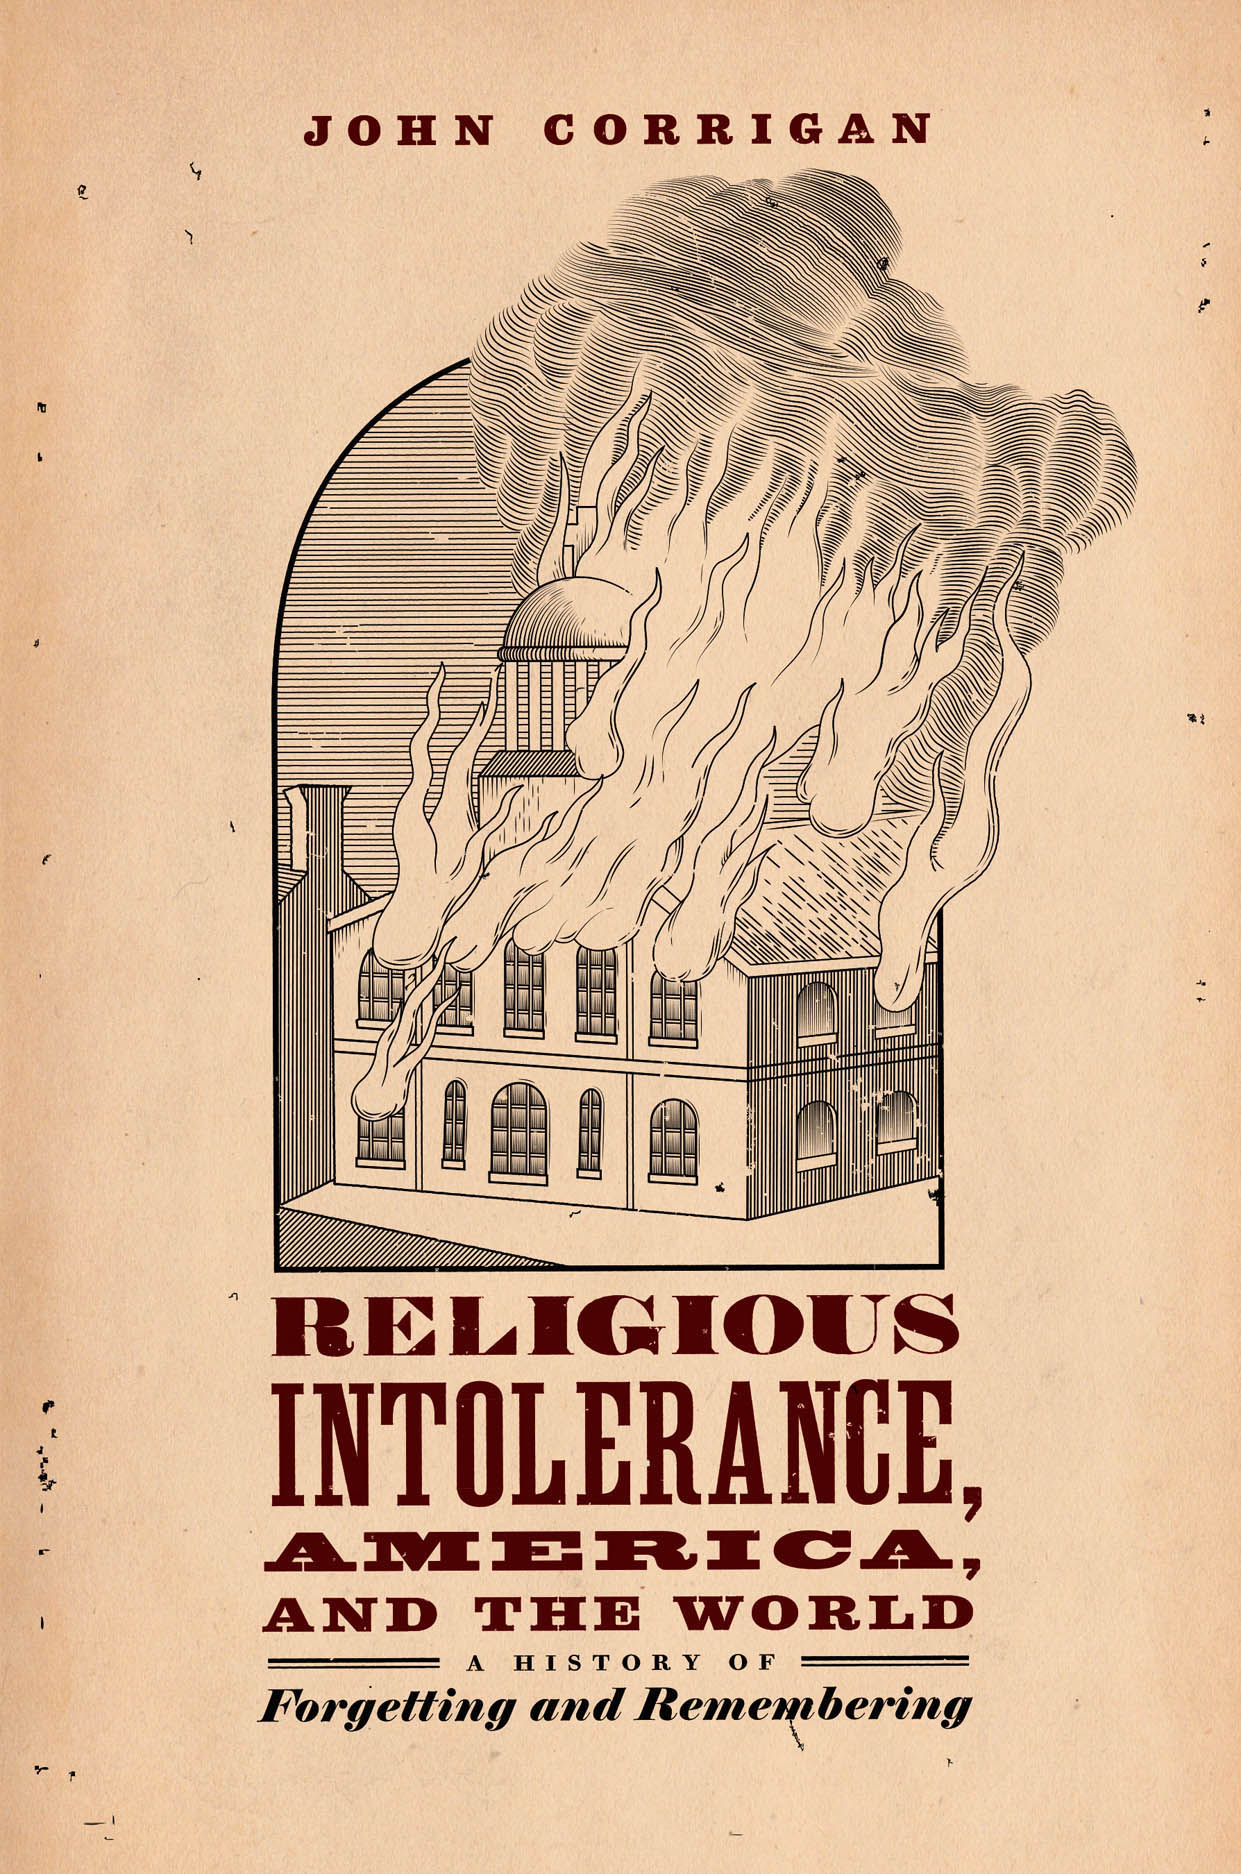 Religious Intolerance, America, and the World: A History of Forgetting and Remembering